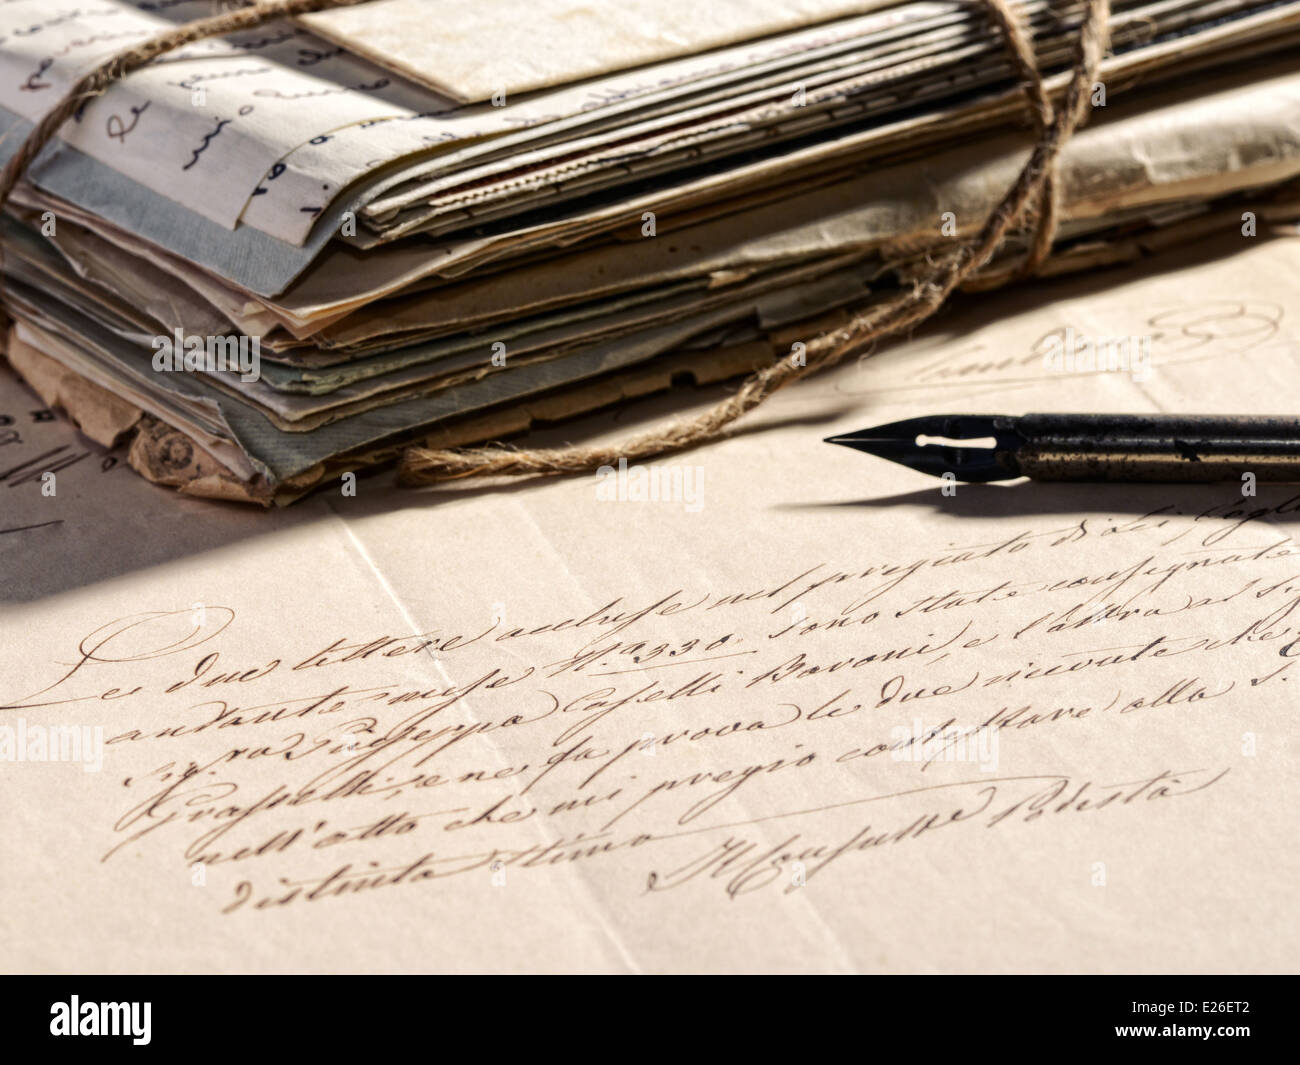 Writing a letter with a retro fountain pen - Stock Image